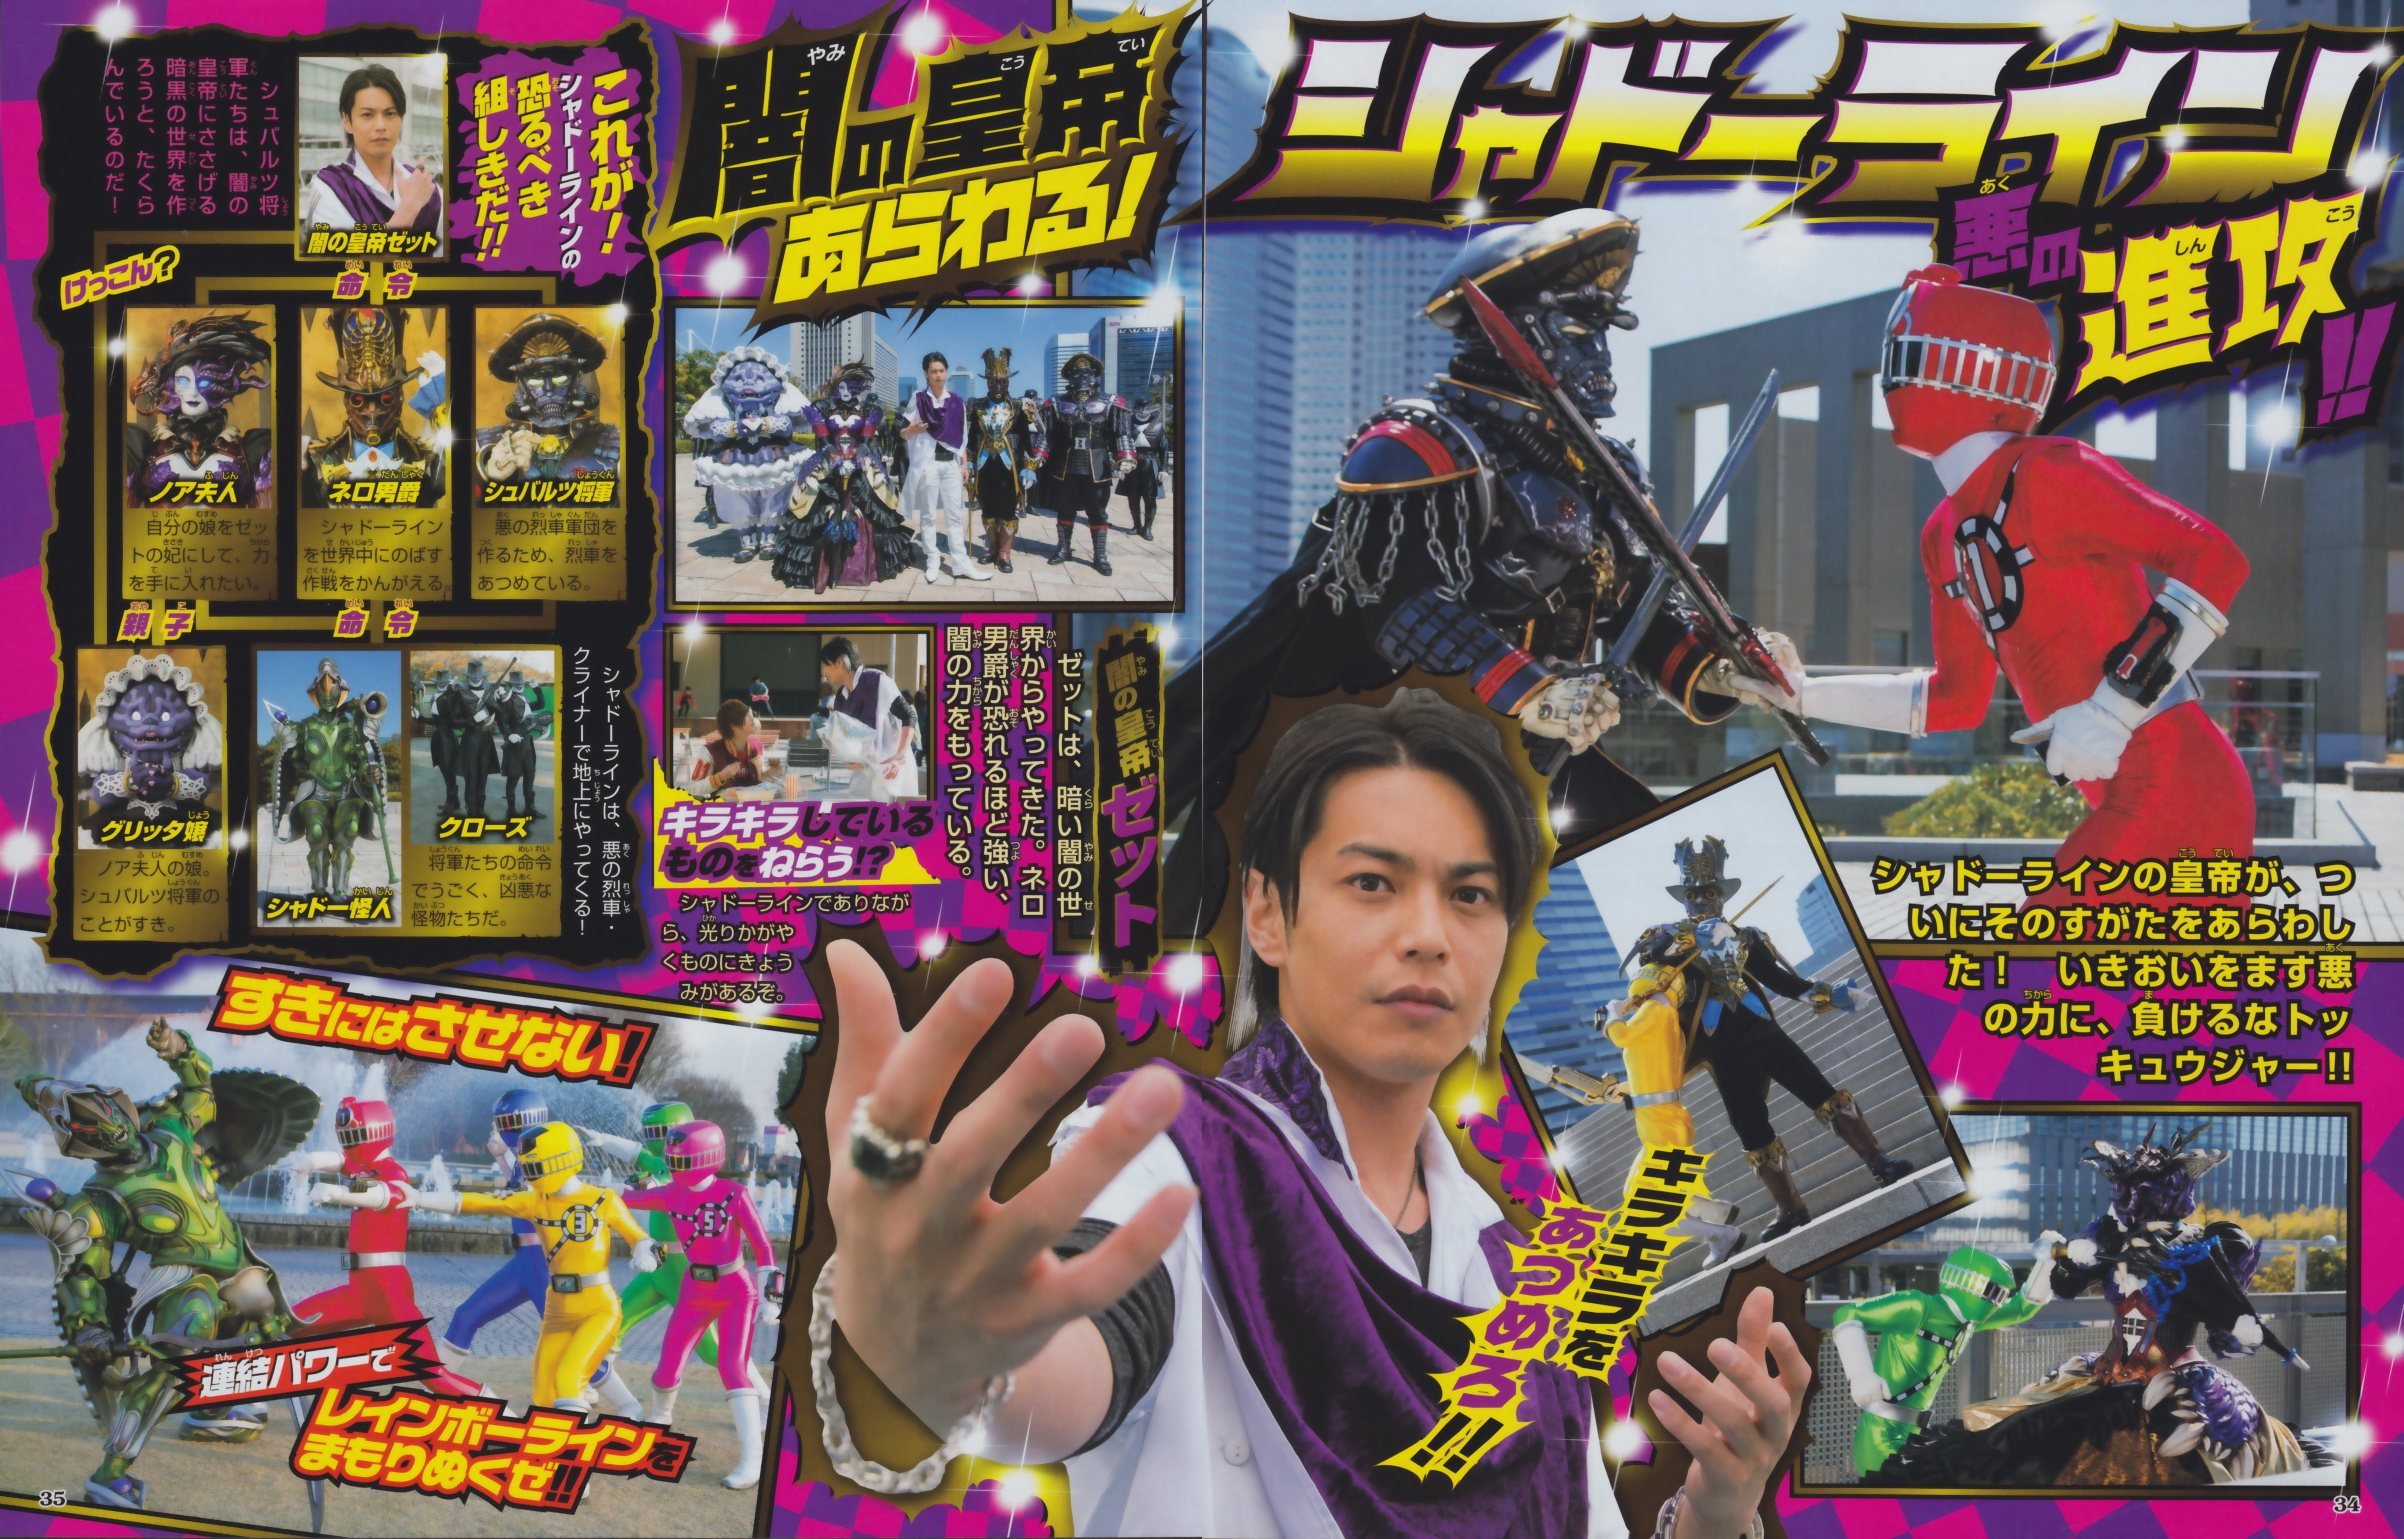 New ToQger Info: The Emperor of Darkness appears